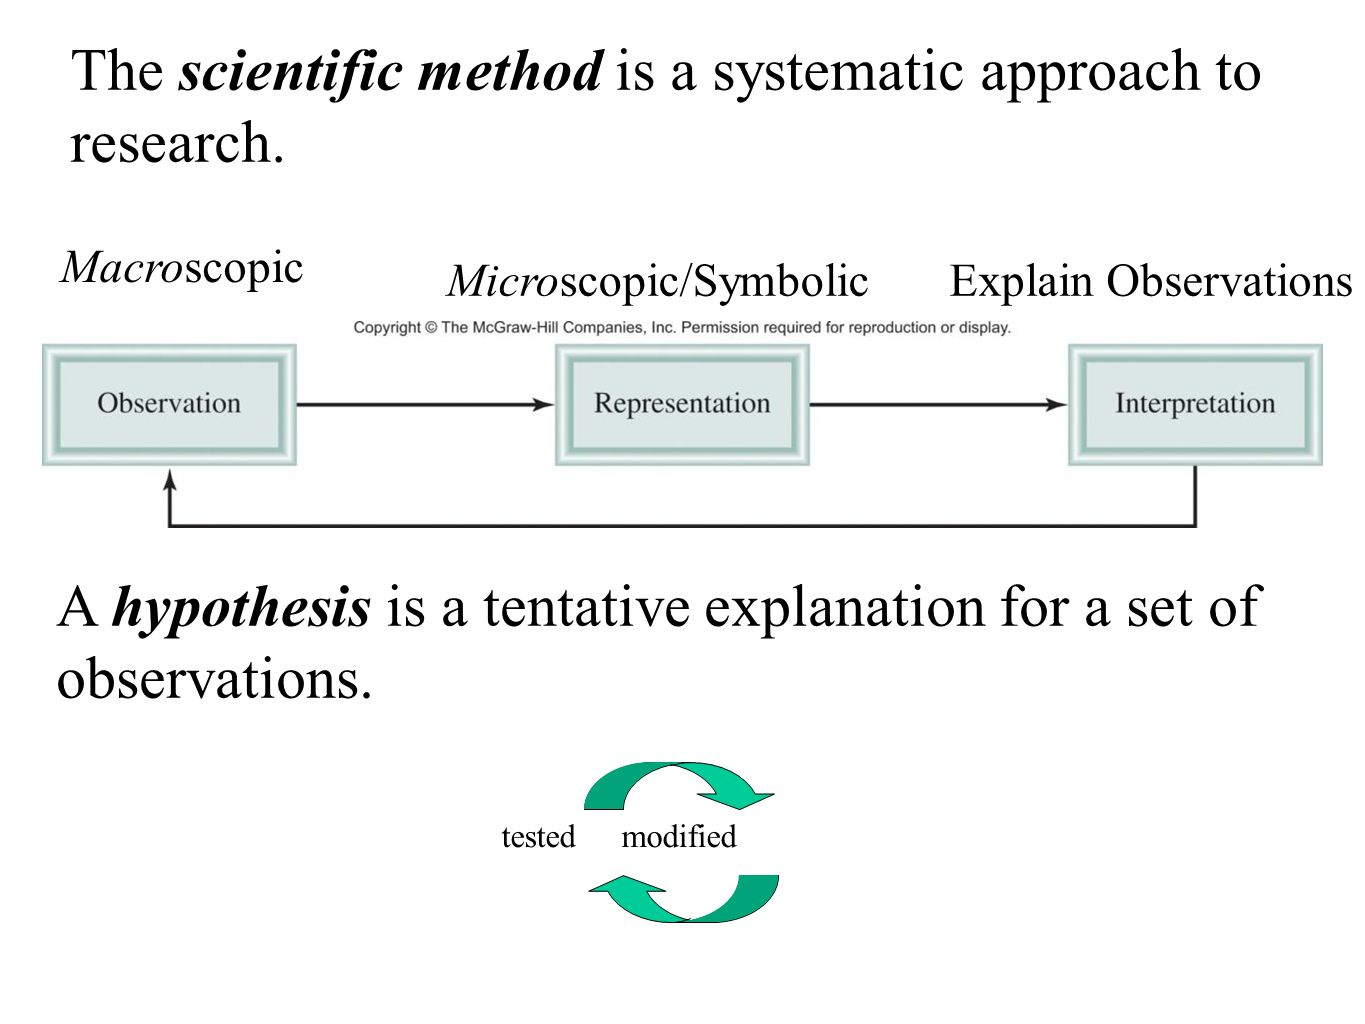 relationship between submicroscopic and macroscopic observations